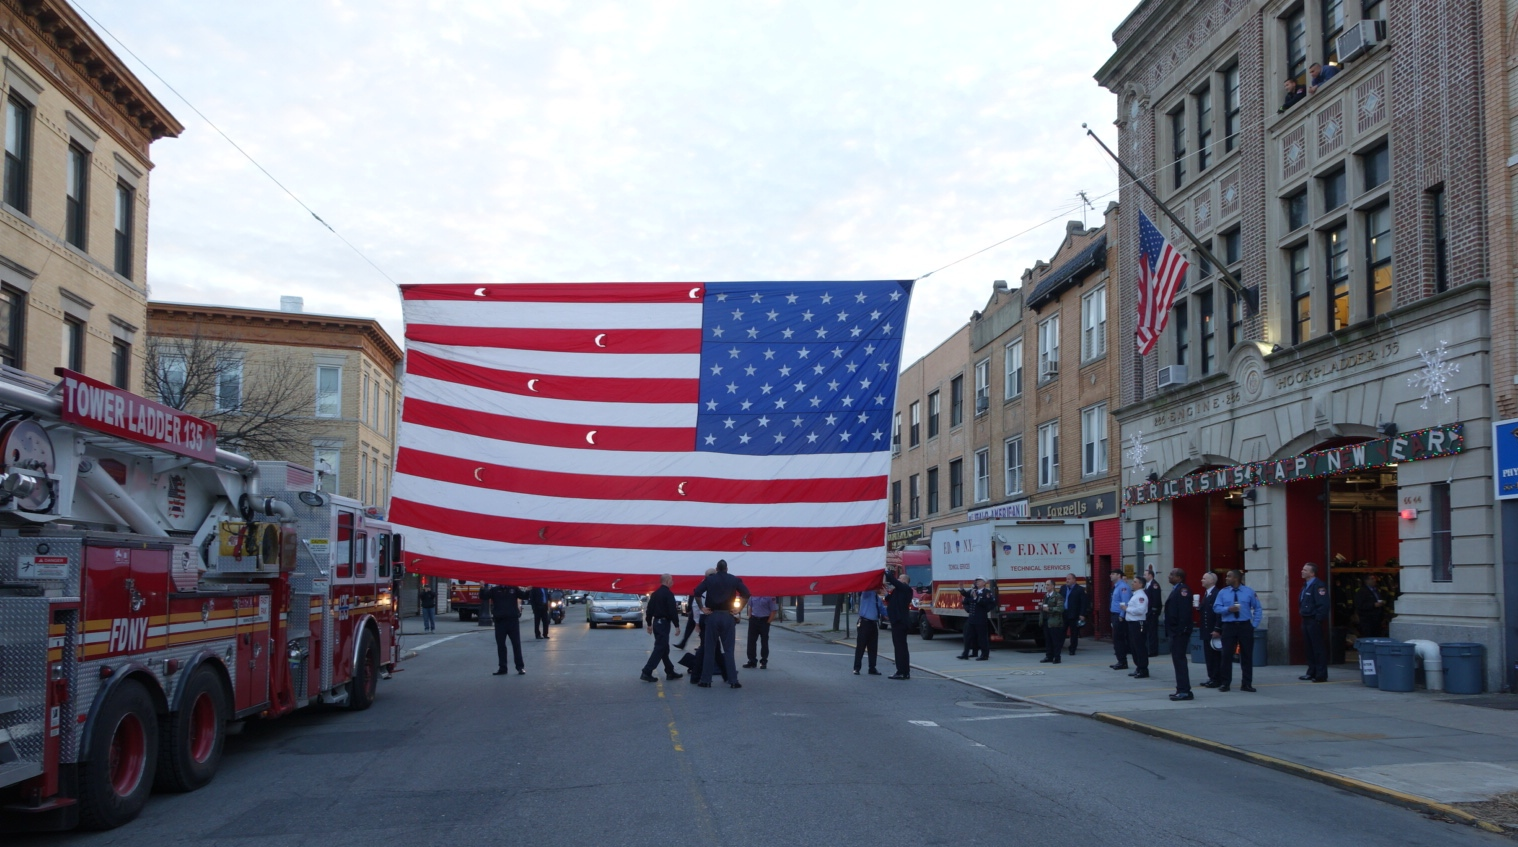 Firefighters from E286/L135 raise a large American flag over the funeral procession route on Myrtle Avenue.